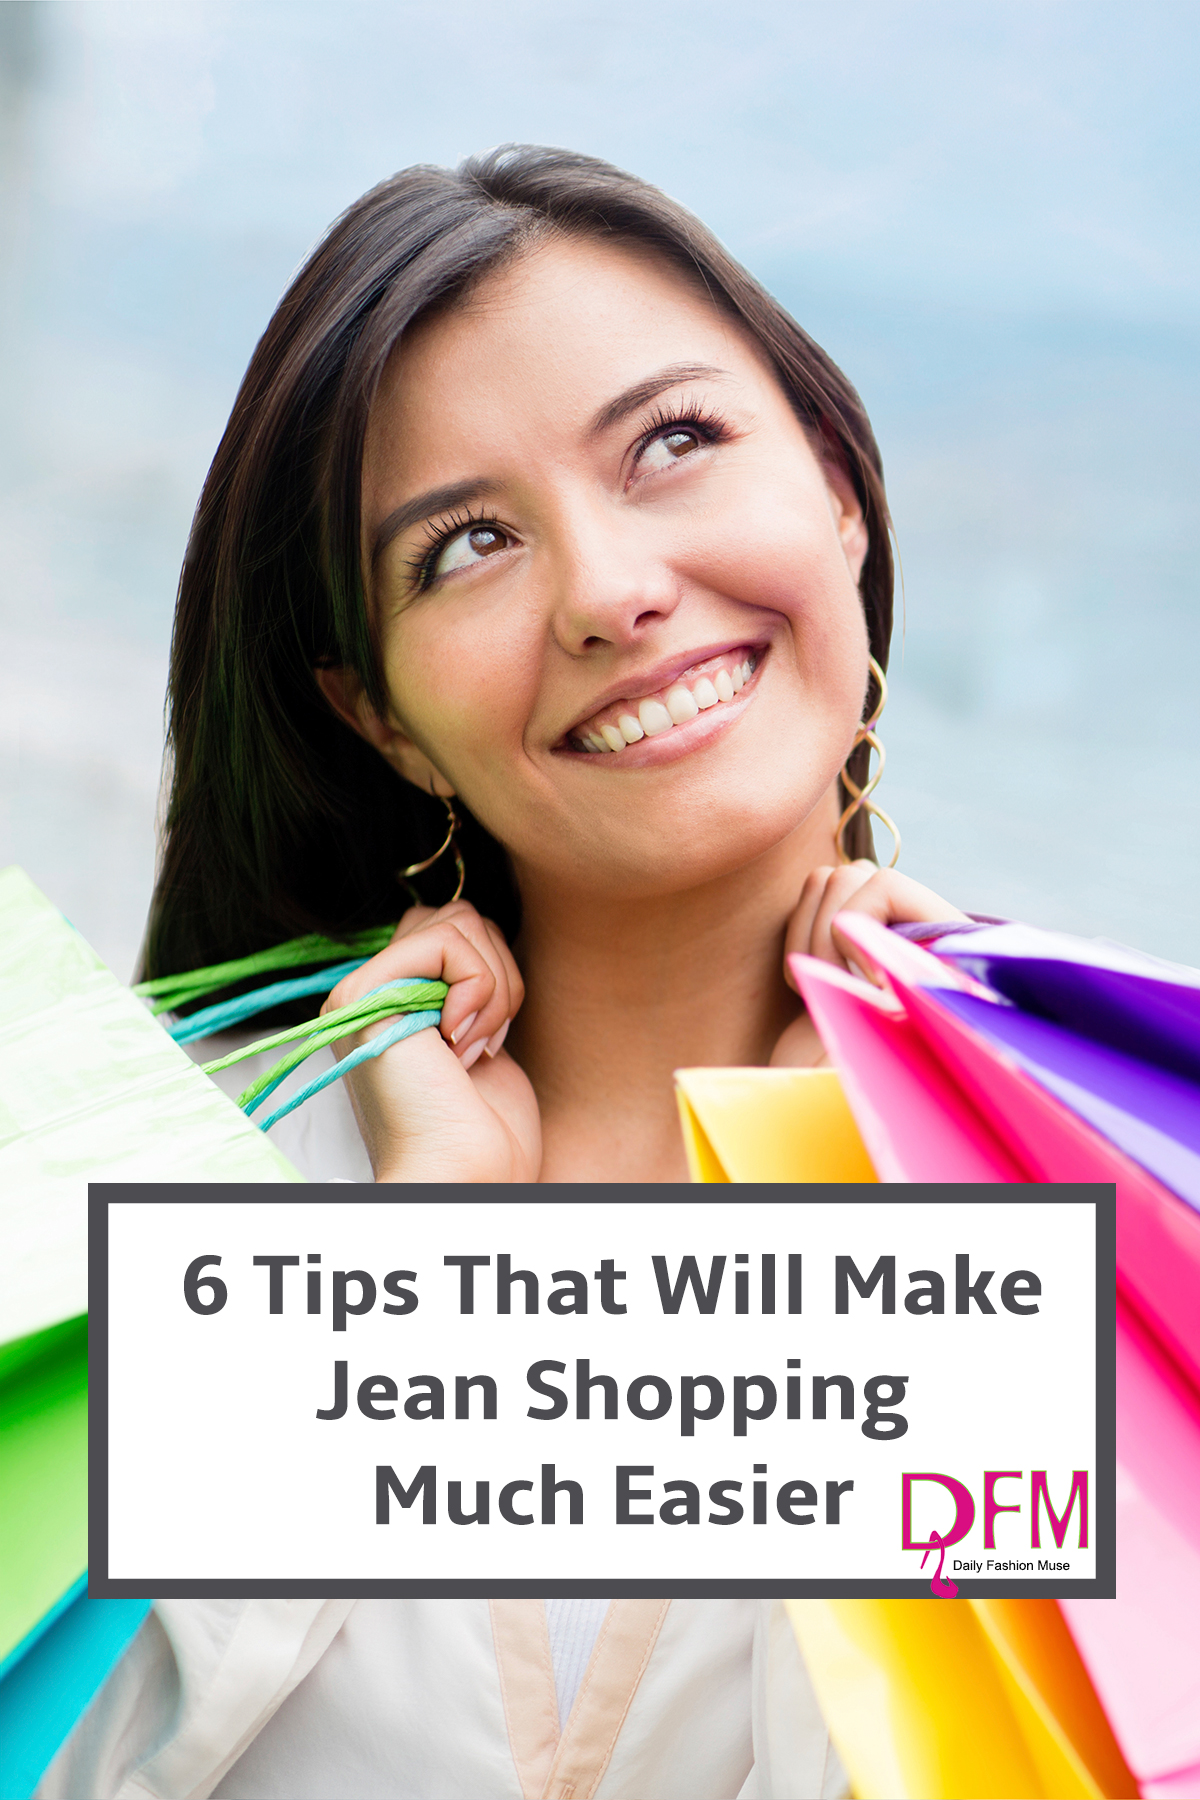 If shopping for jeans drives you up the wall, check out these 6 tips that will make jean shopping much easier.